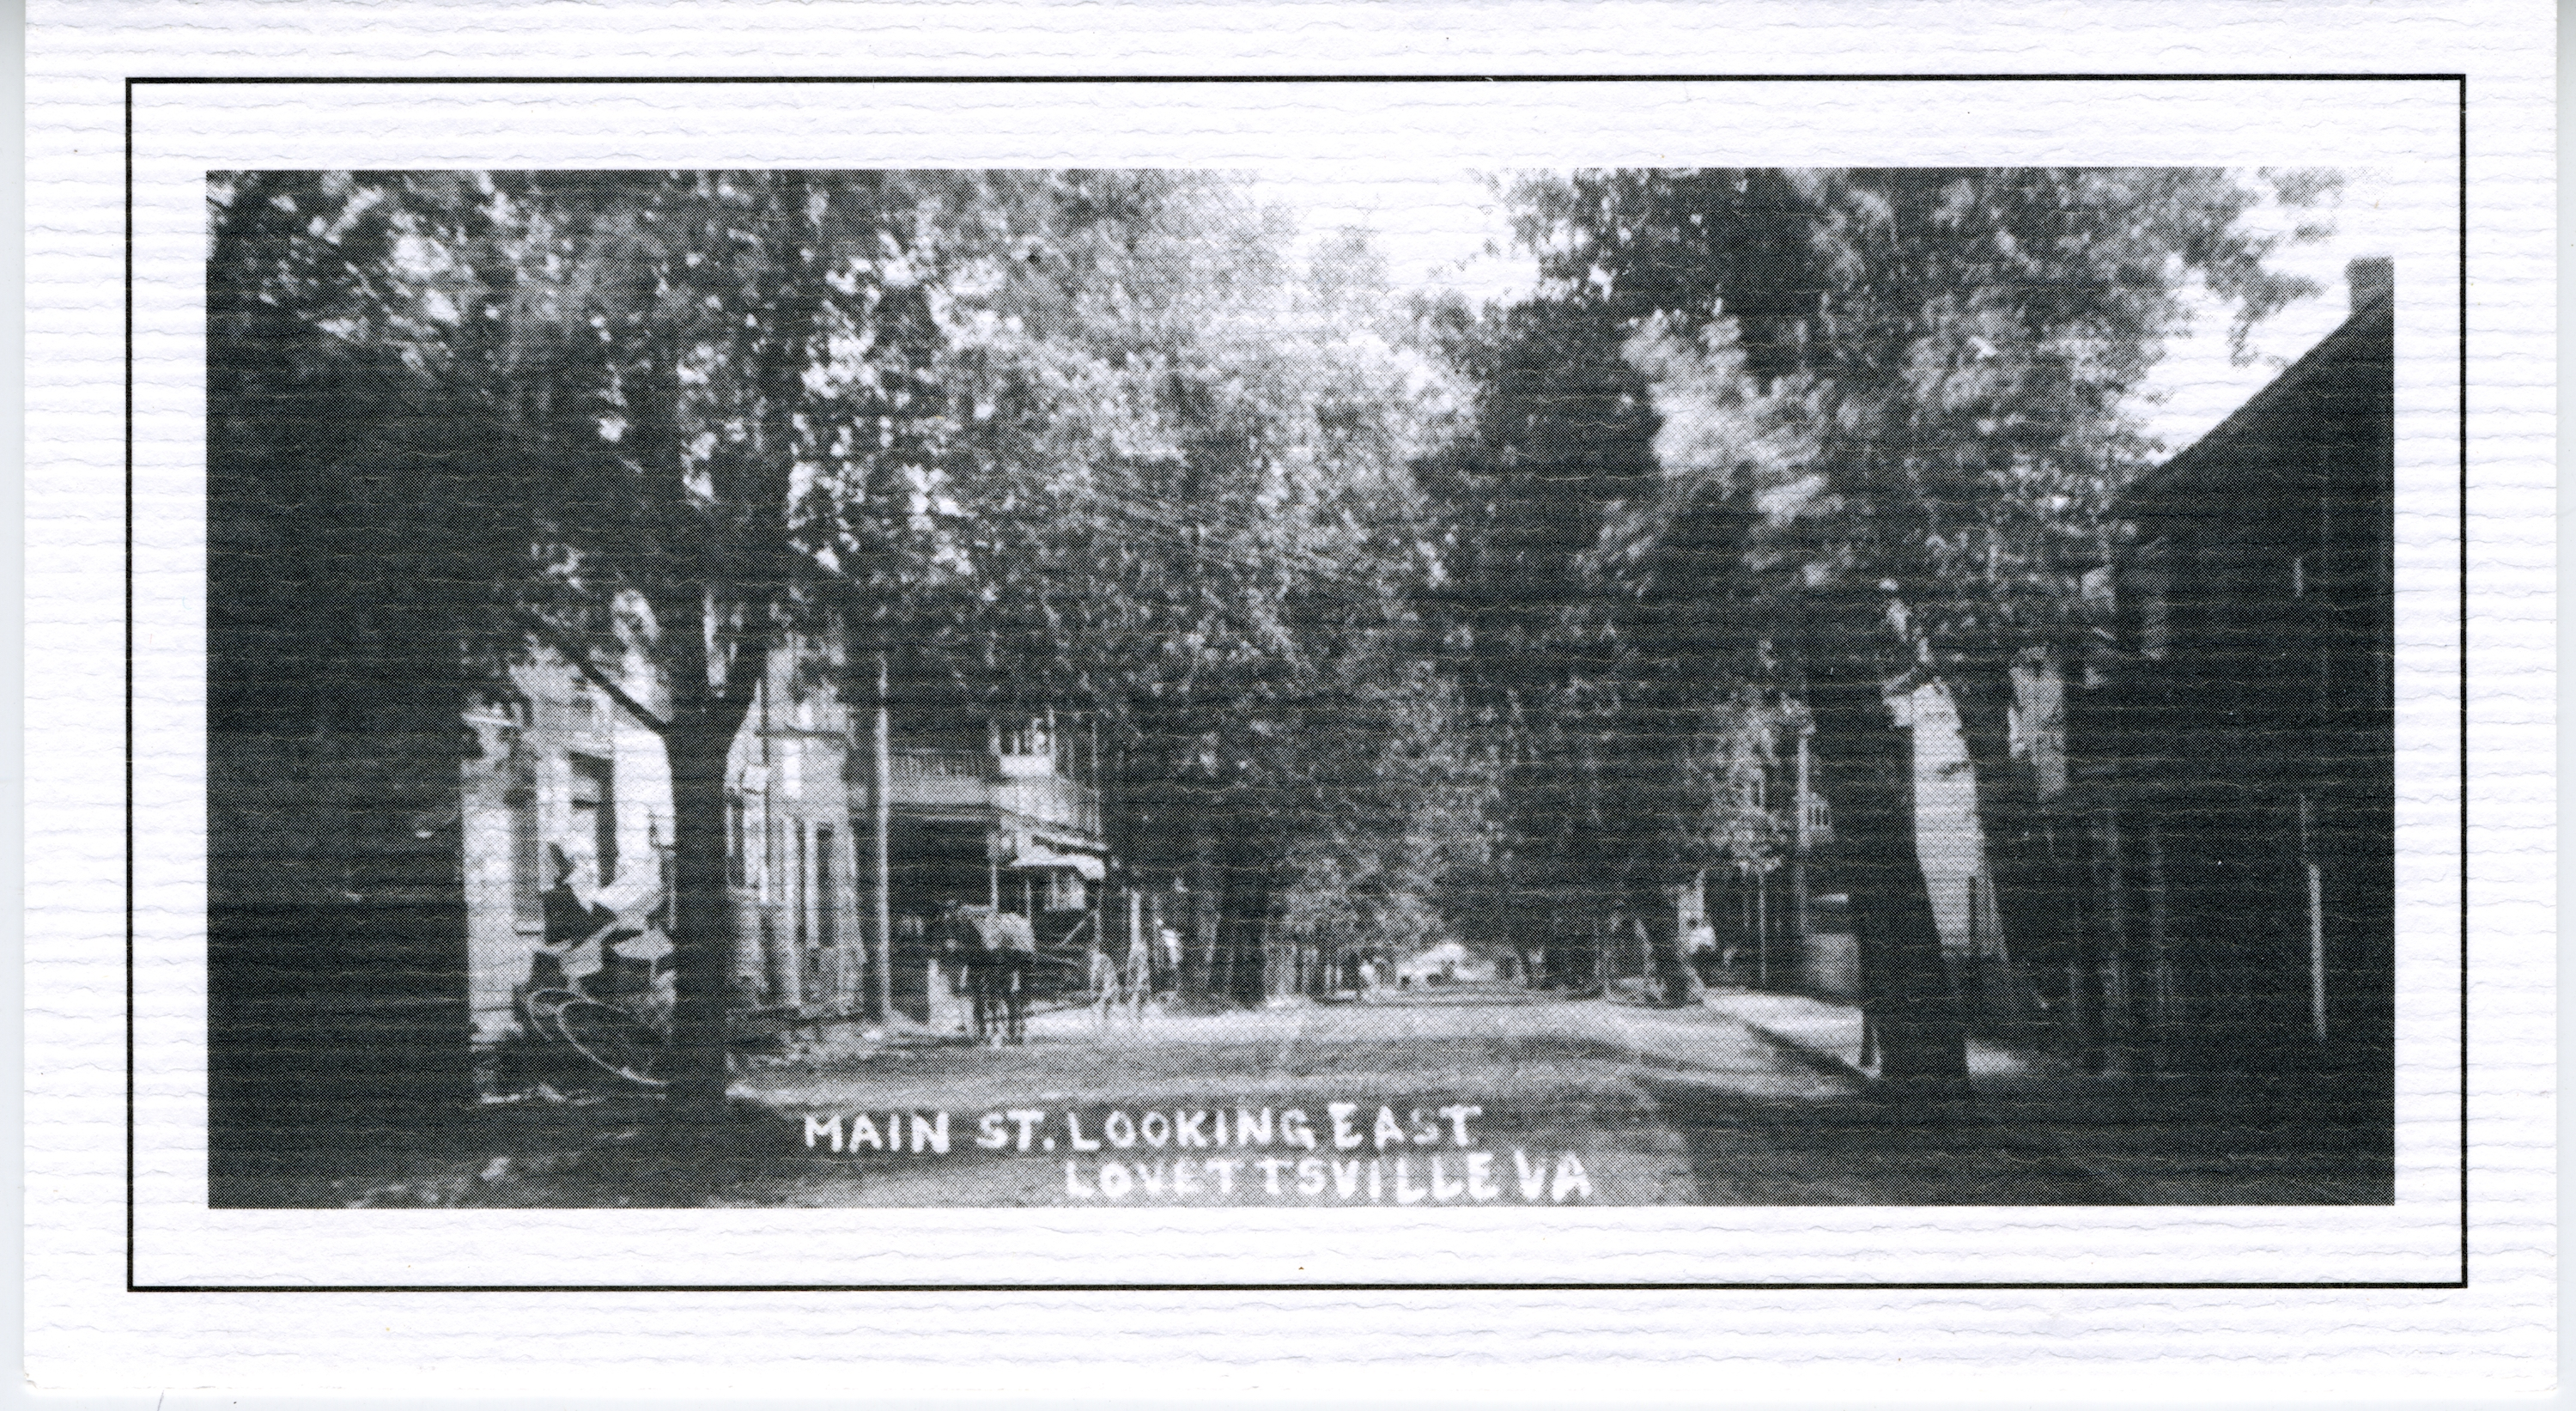 1900 circa Lovettsville Main Street Looking East copy 2